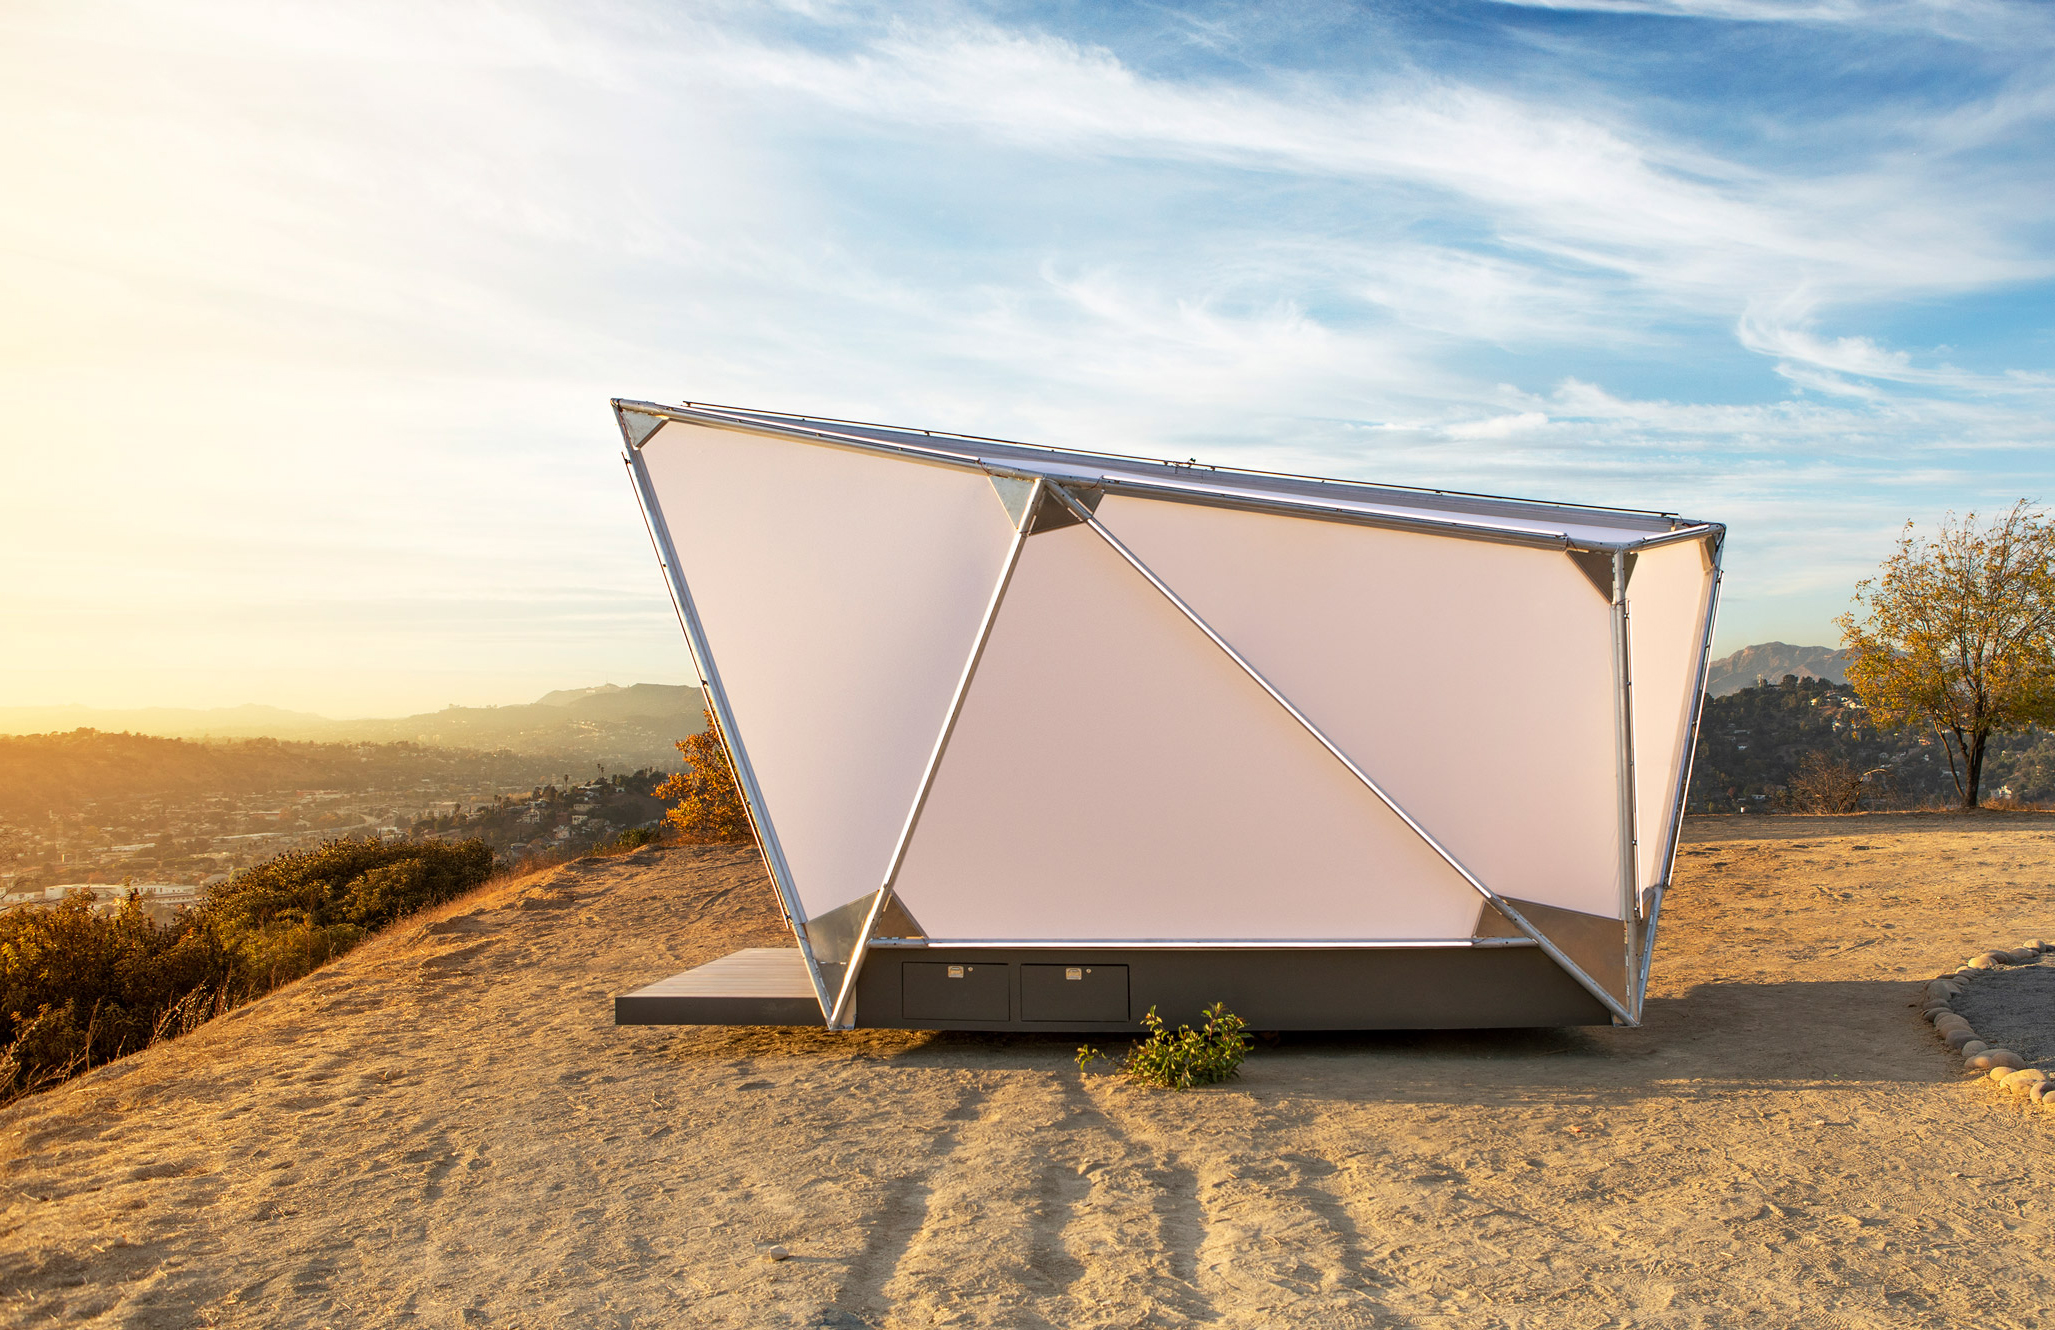 Jupe pod - a sci-fi take on the classic tent